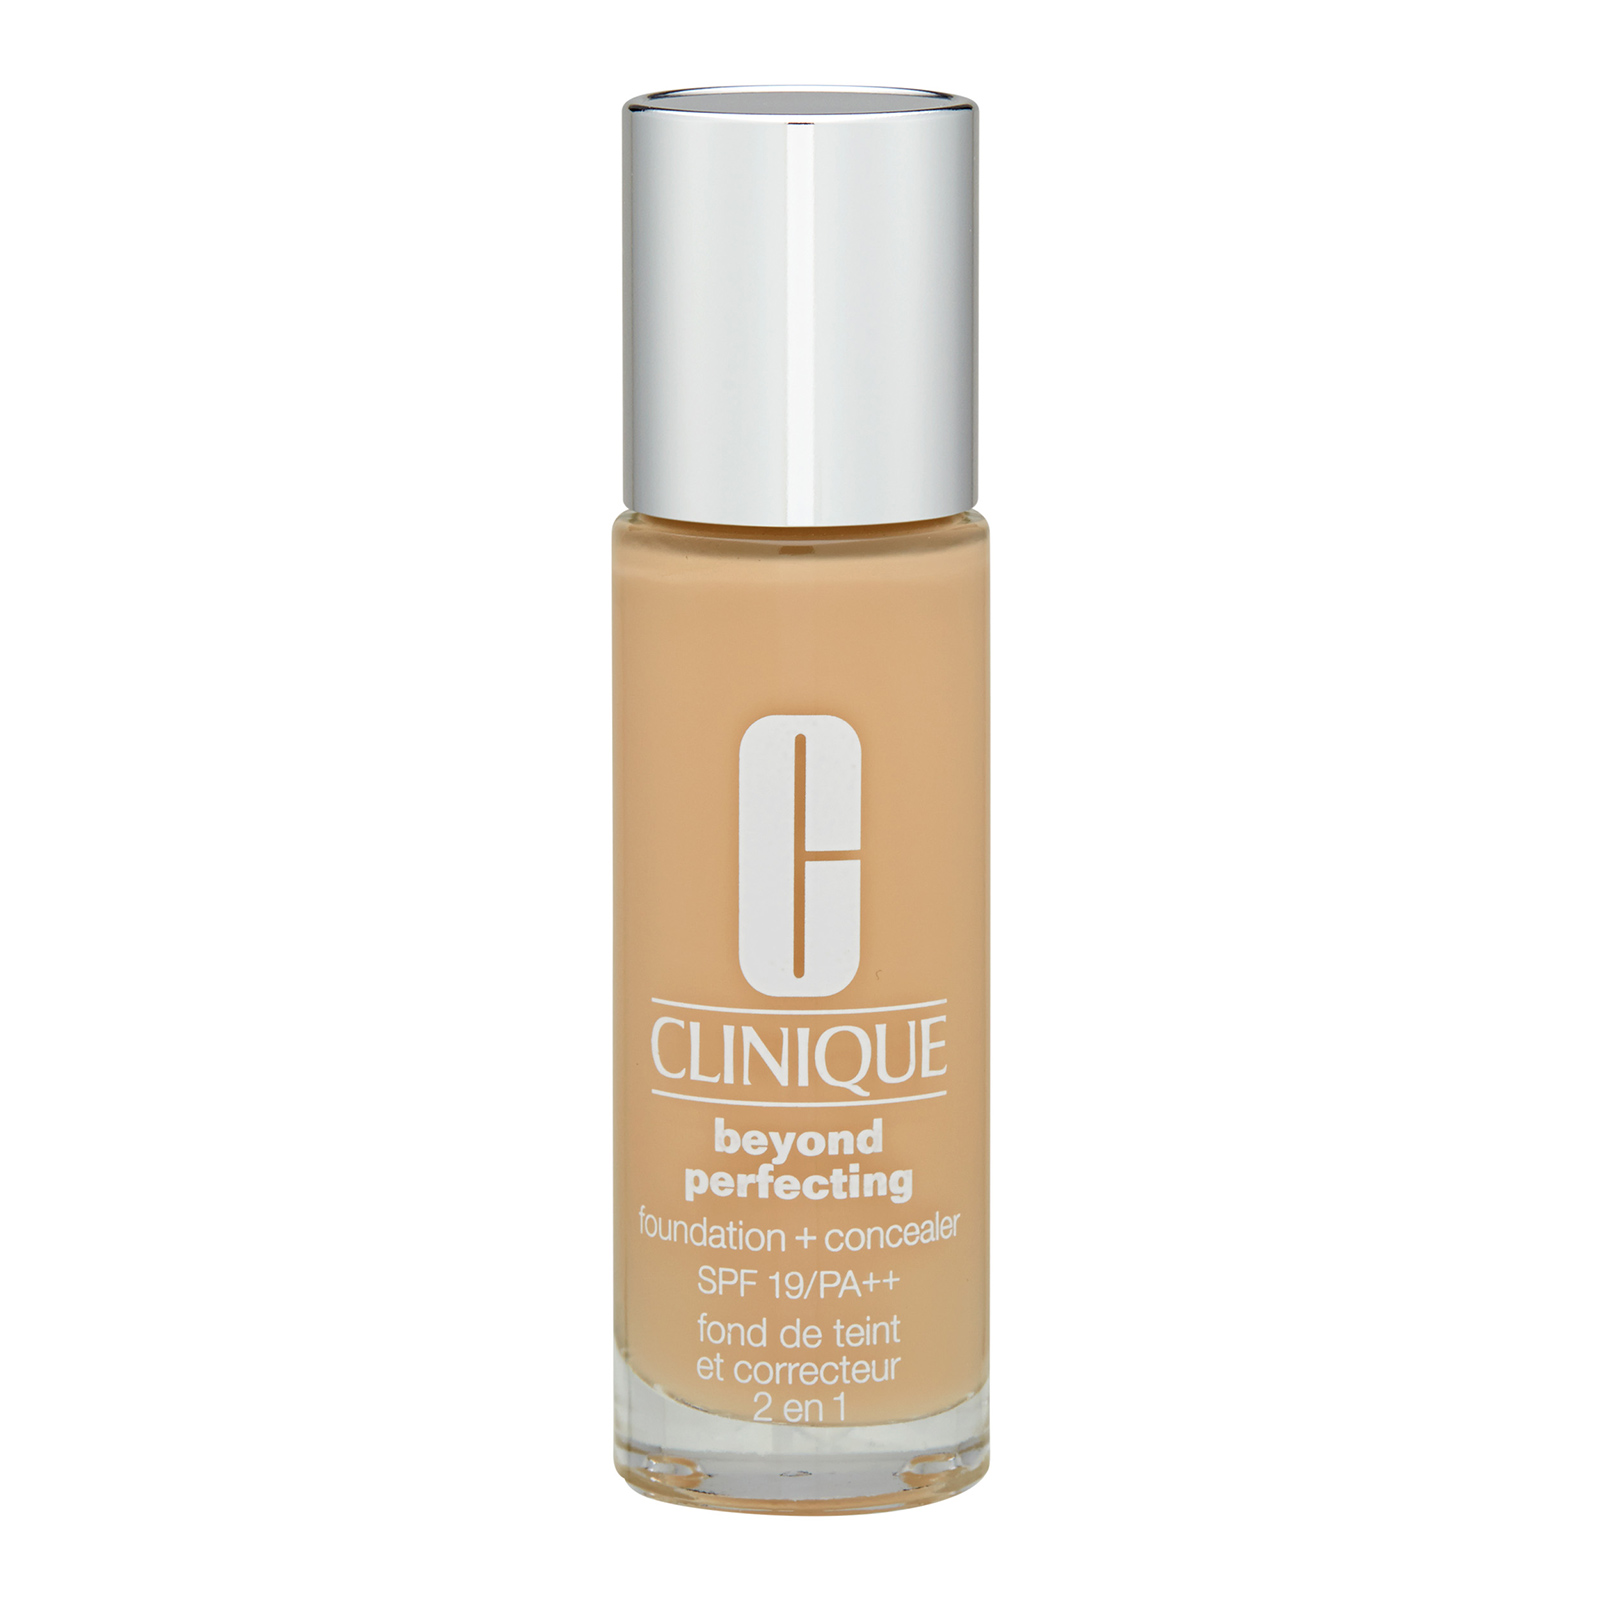 Clinique  Beyond Perfecting Foundation + Concealer SPF19 / PA++ 63 Fresh Beige, 1oz, 30ml